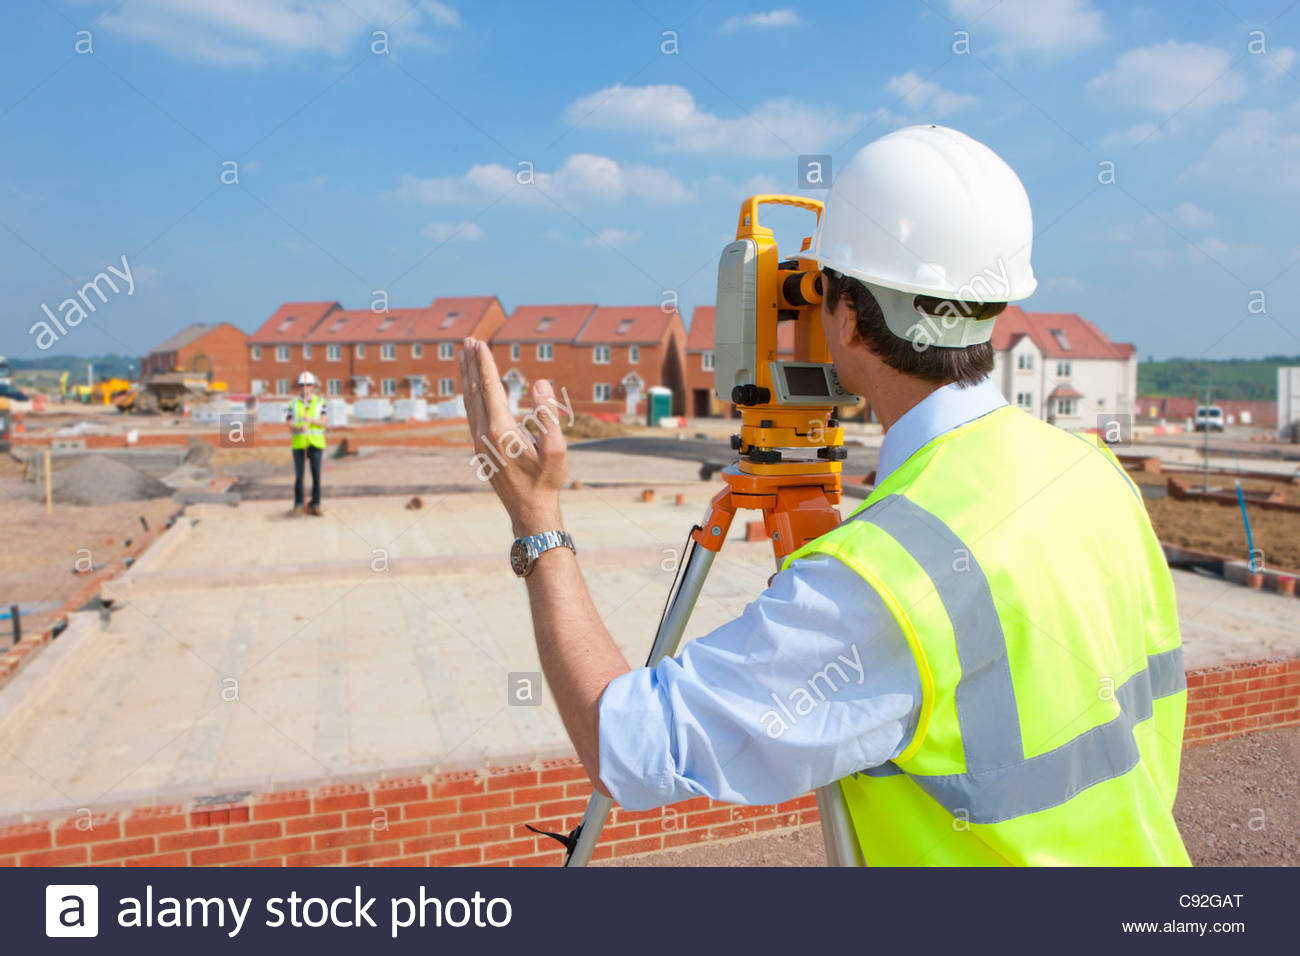 Surveyor behind theodolite gesturing to co-worker at construction site - Stock Image